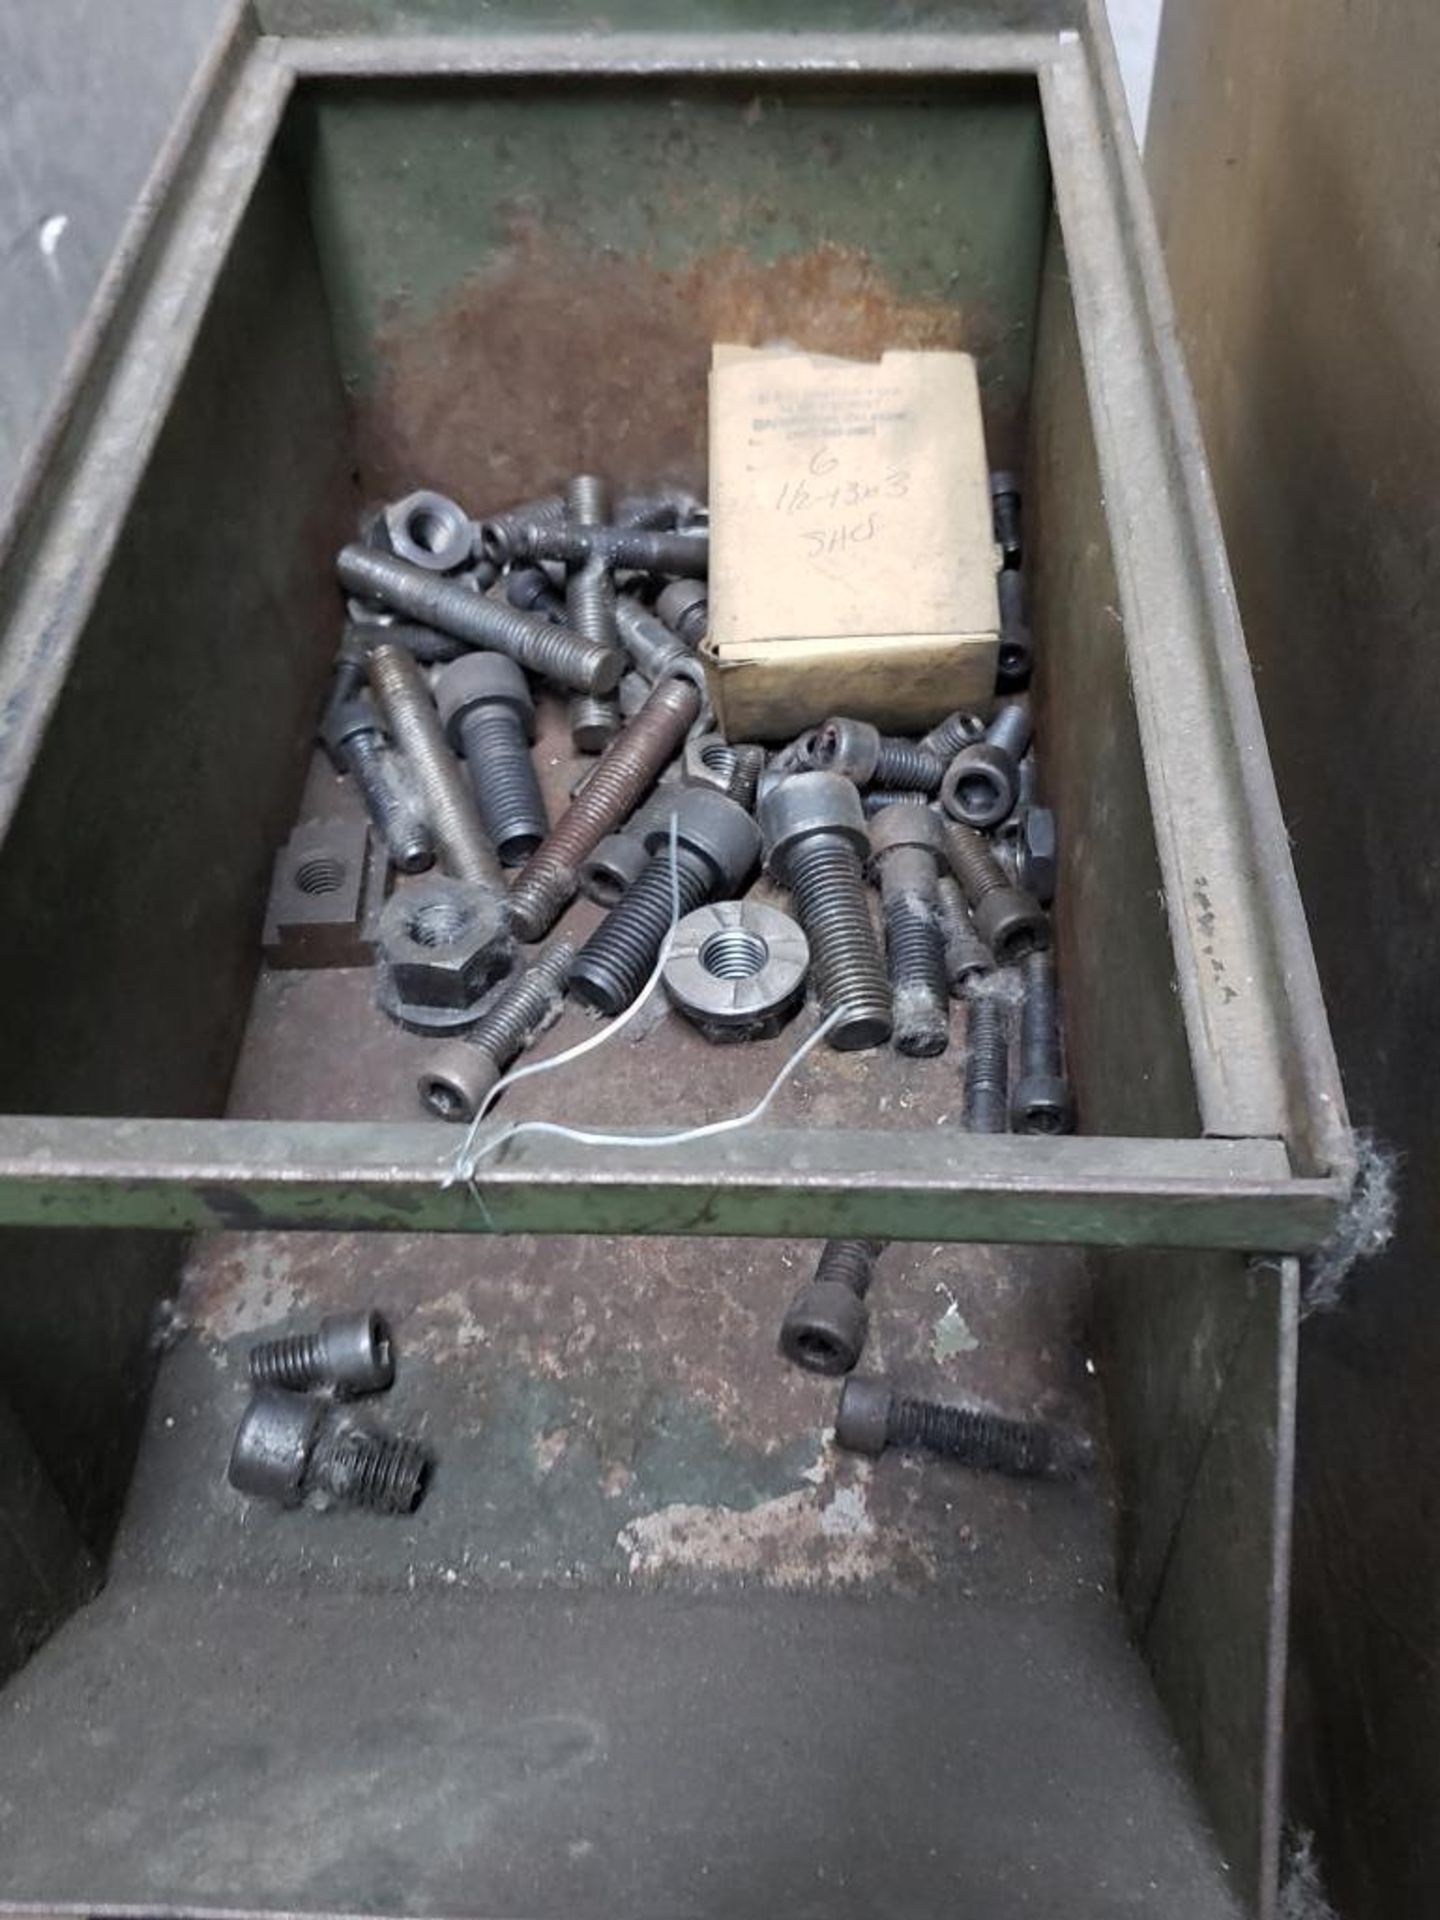 Lot 15 - Storage bins and drawers with large quantity of press hold down hardware.